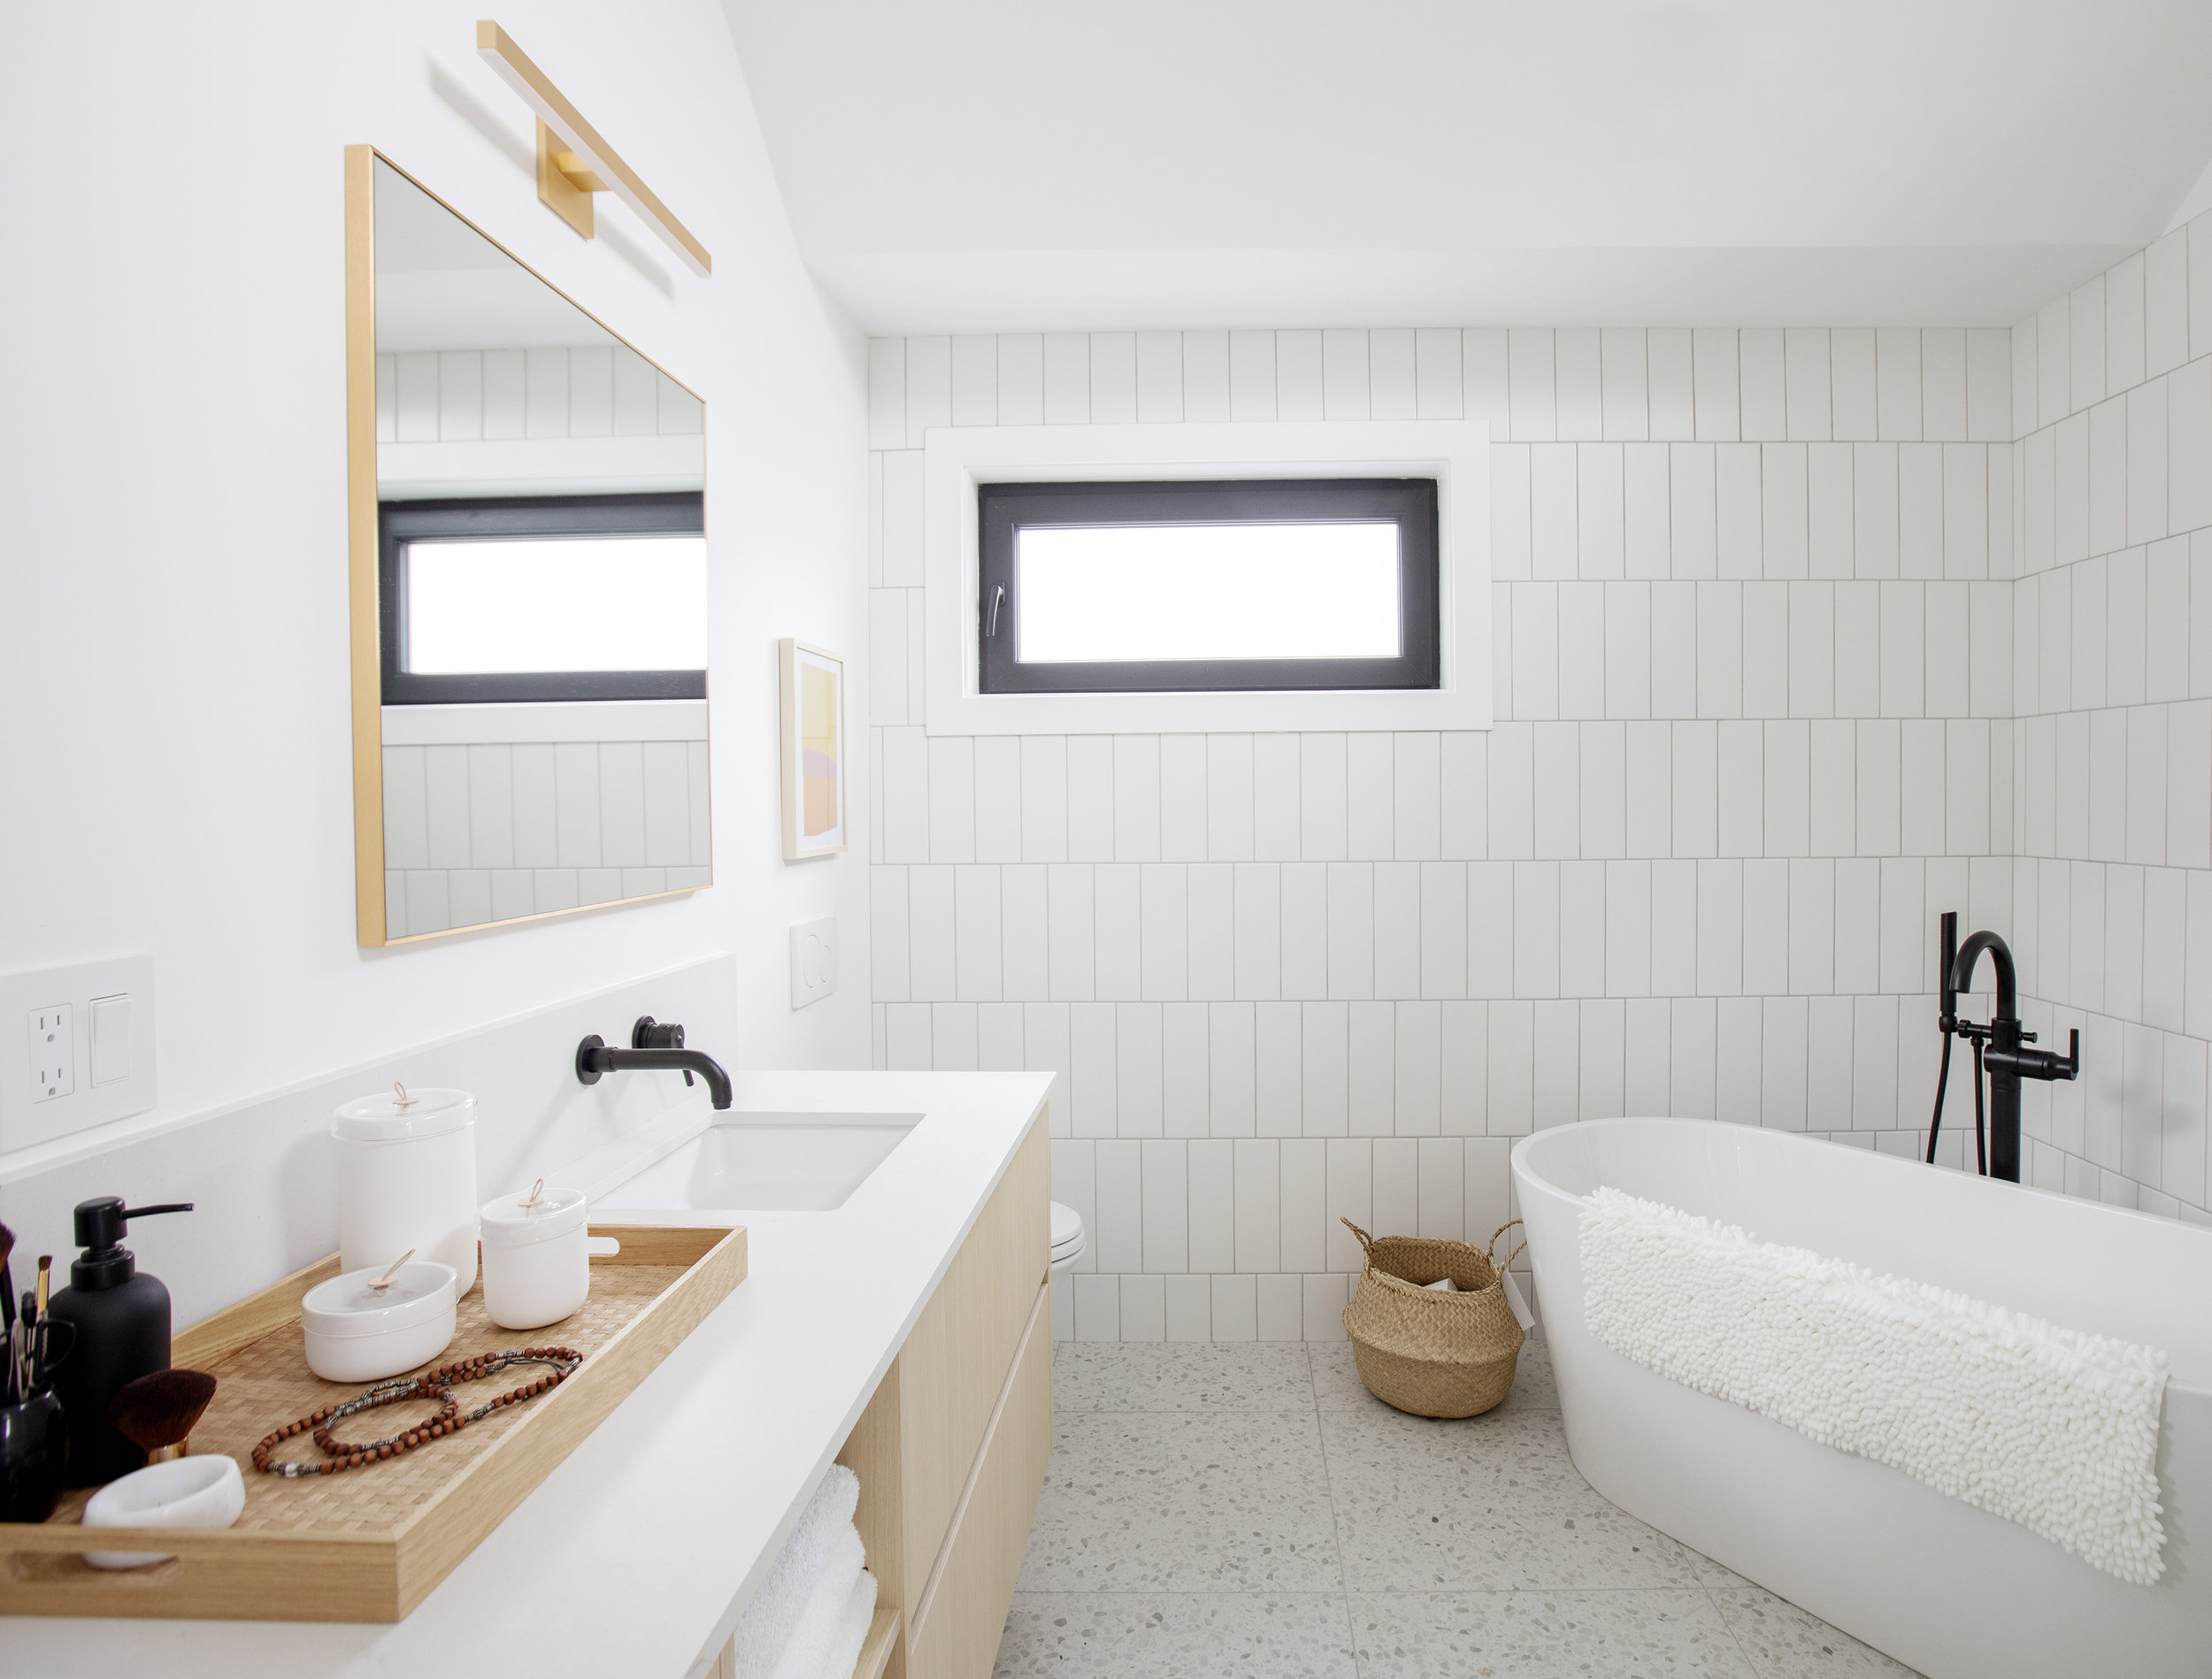 The master bathroom of East 13th Street is modern and crisp, with white countertops, chrome fixtures and a large freestanding soaker tub.